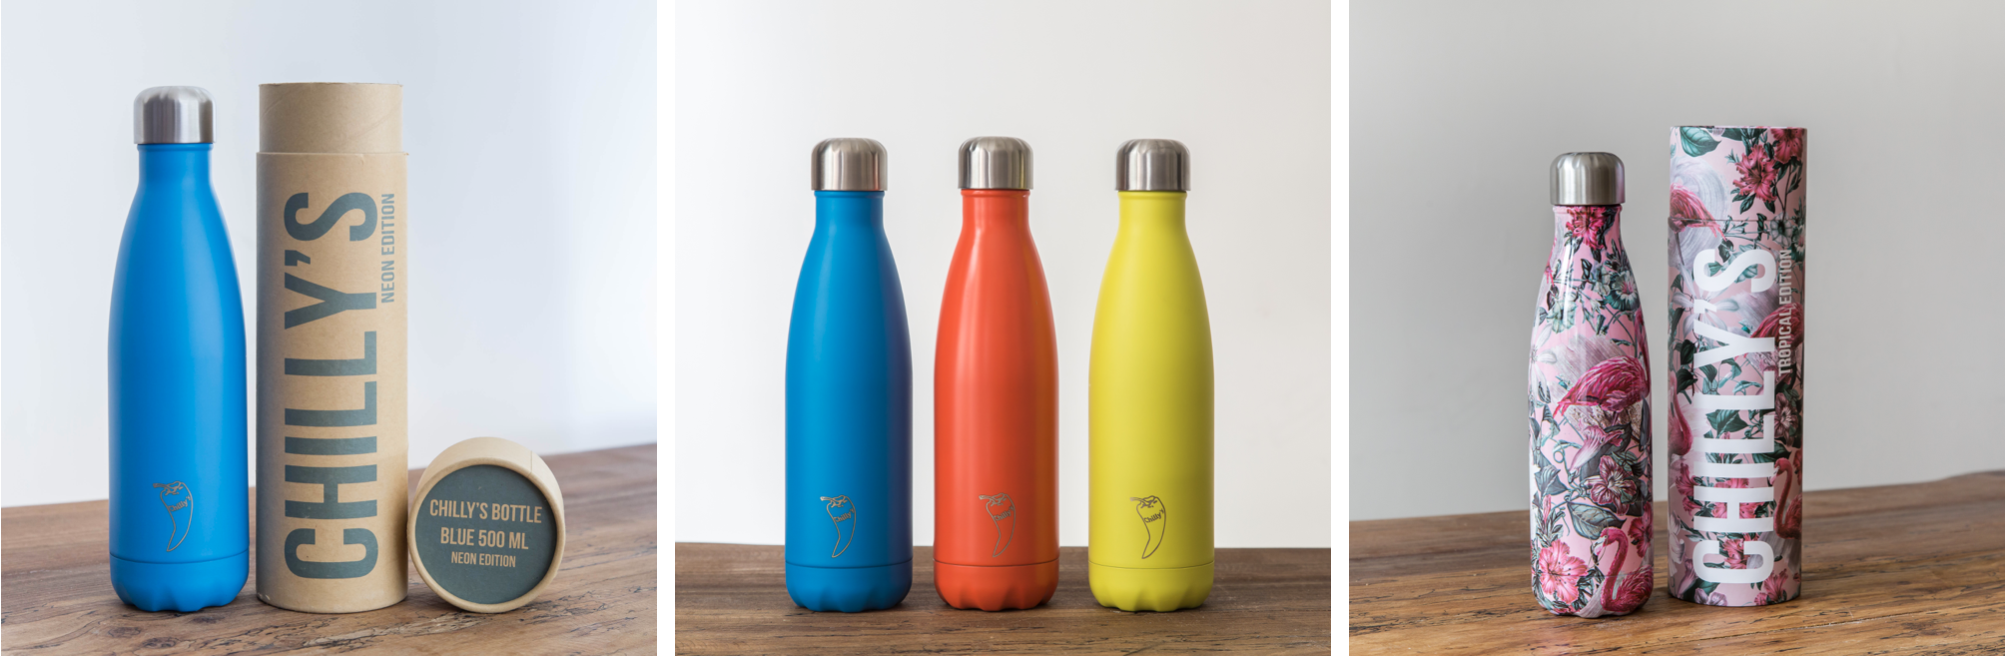 carvills-chilly's-water-bottles